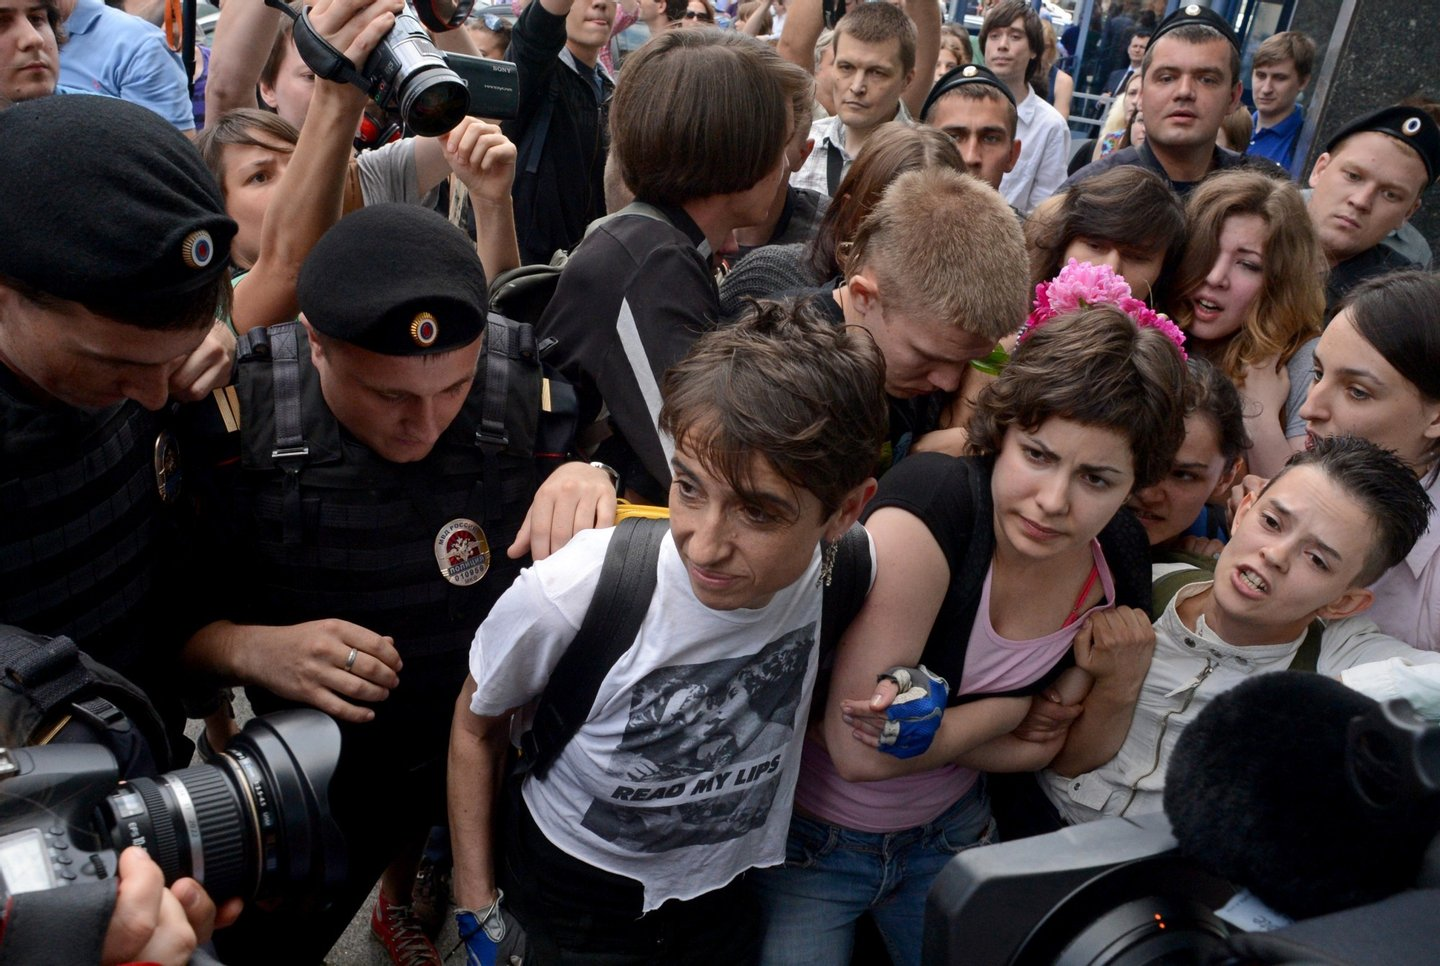 "Masha Gessen (L) and other Russian gay rights activists protest outside the lower house of Russias parliament, the State Duma, in Moscow, on June 11, 2013. Russia's parliament debated today a law introducing steep fines and jail terms for people who promote homosexual ""propaganda"" to minors, a measure critics fear will be used to justify the repression of gays amid rising homophobia in the country. AFP PHOTO / KIRILL KUDRYAVTSEV        (Photo credit should read KIRILL KUDRYAVTSEV/AFP/Getty Images)"